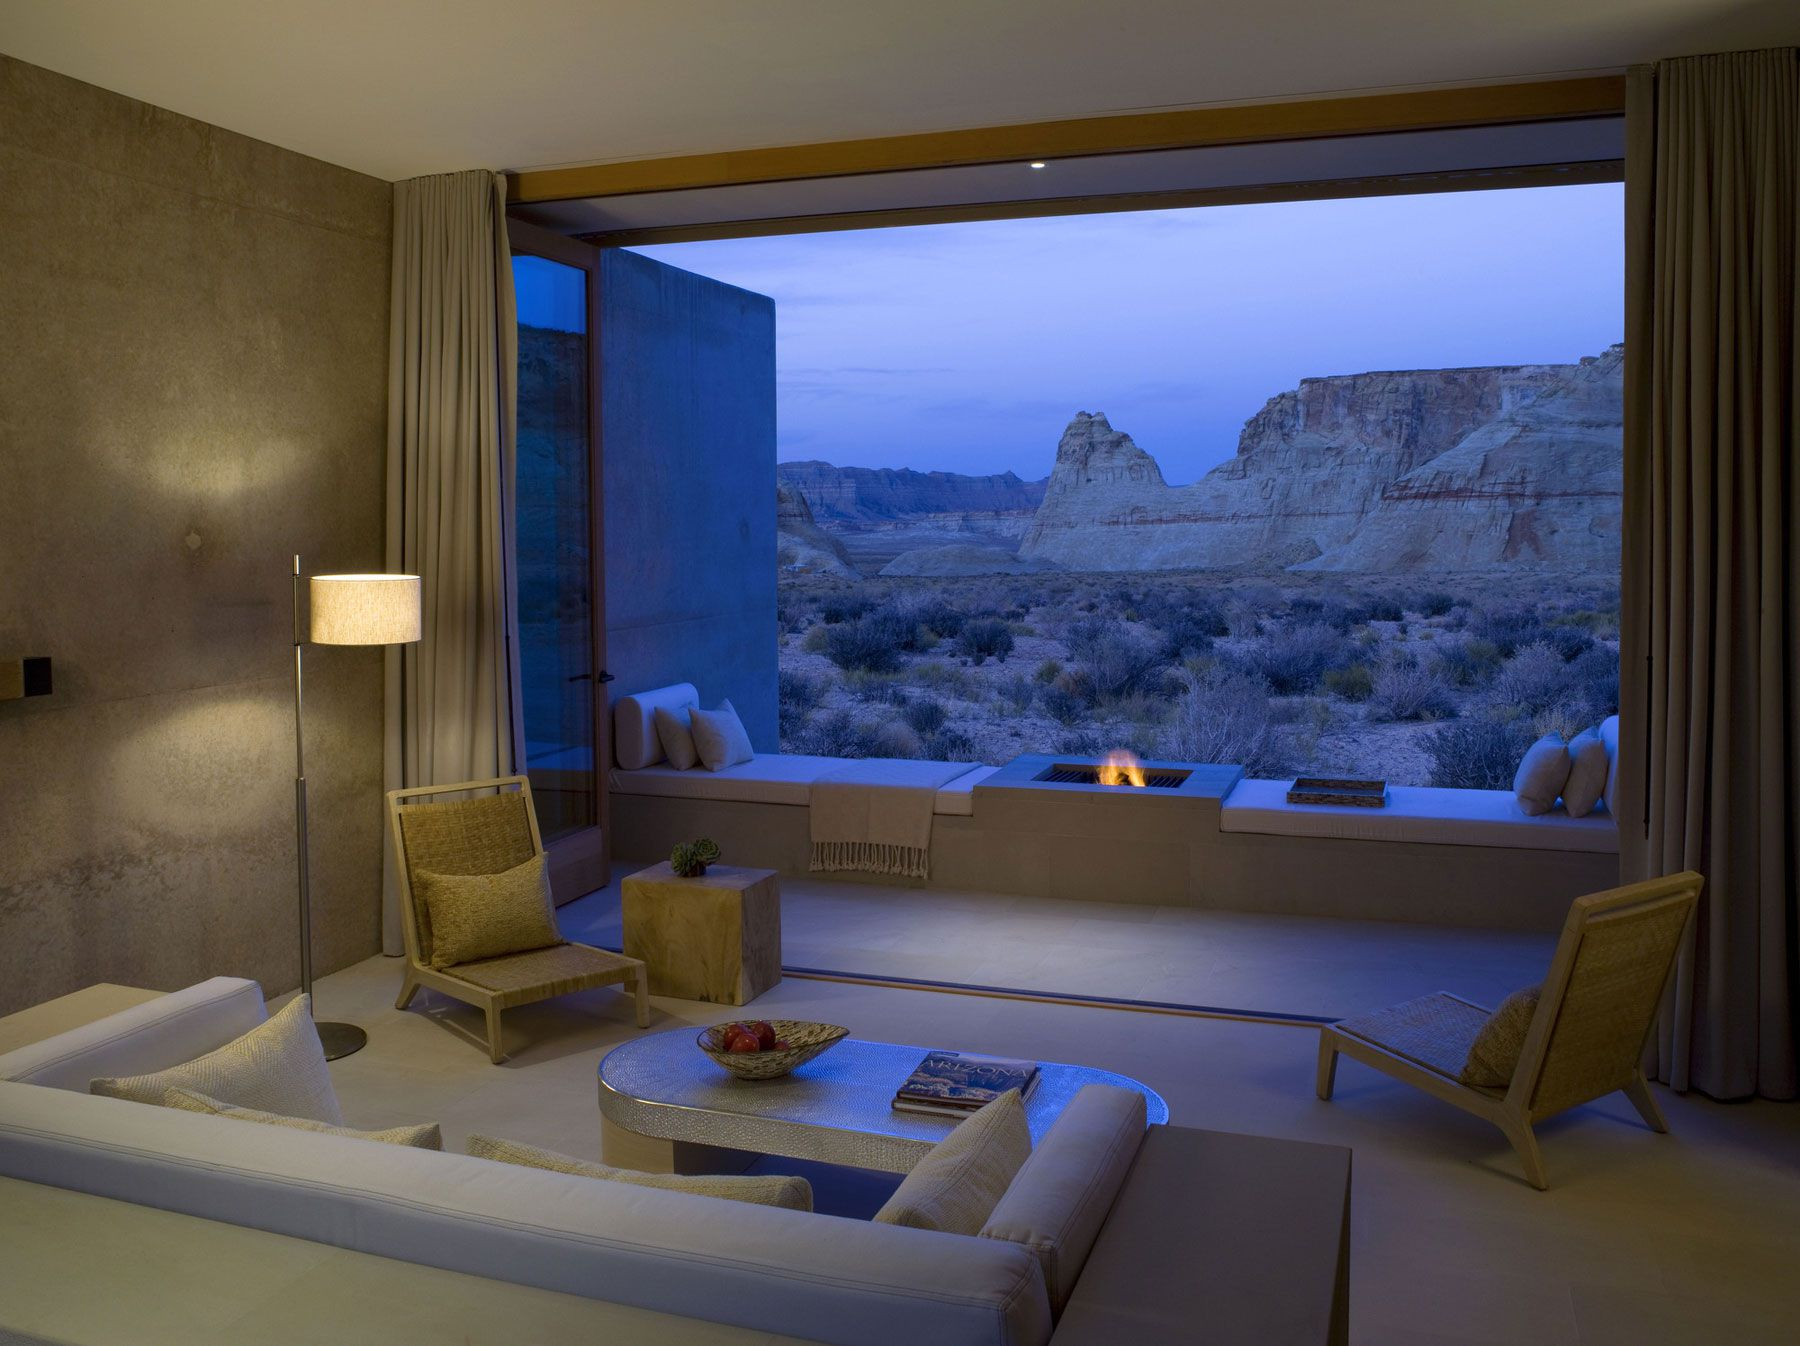 Amangiri-Luxury-Resort-Hotel-in-Canyon-Point-08-2